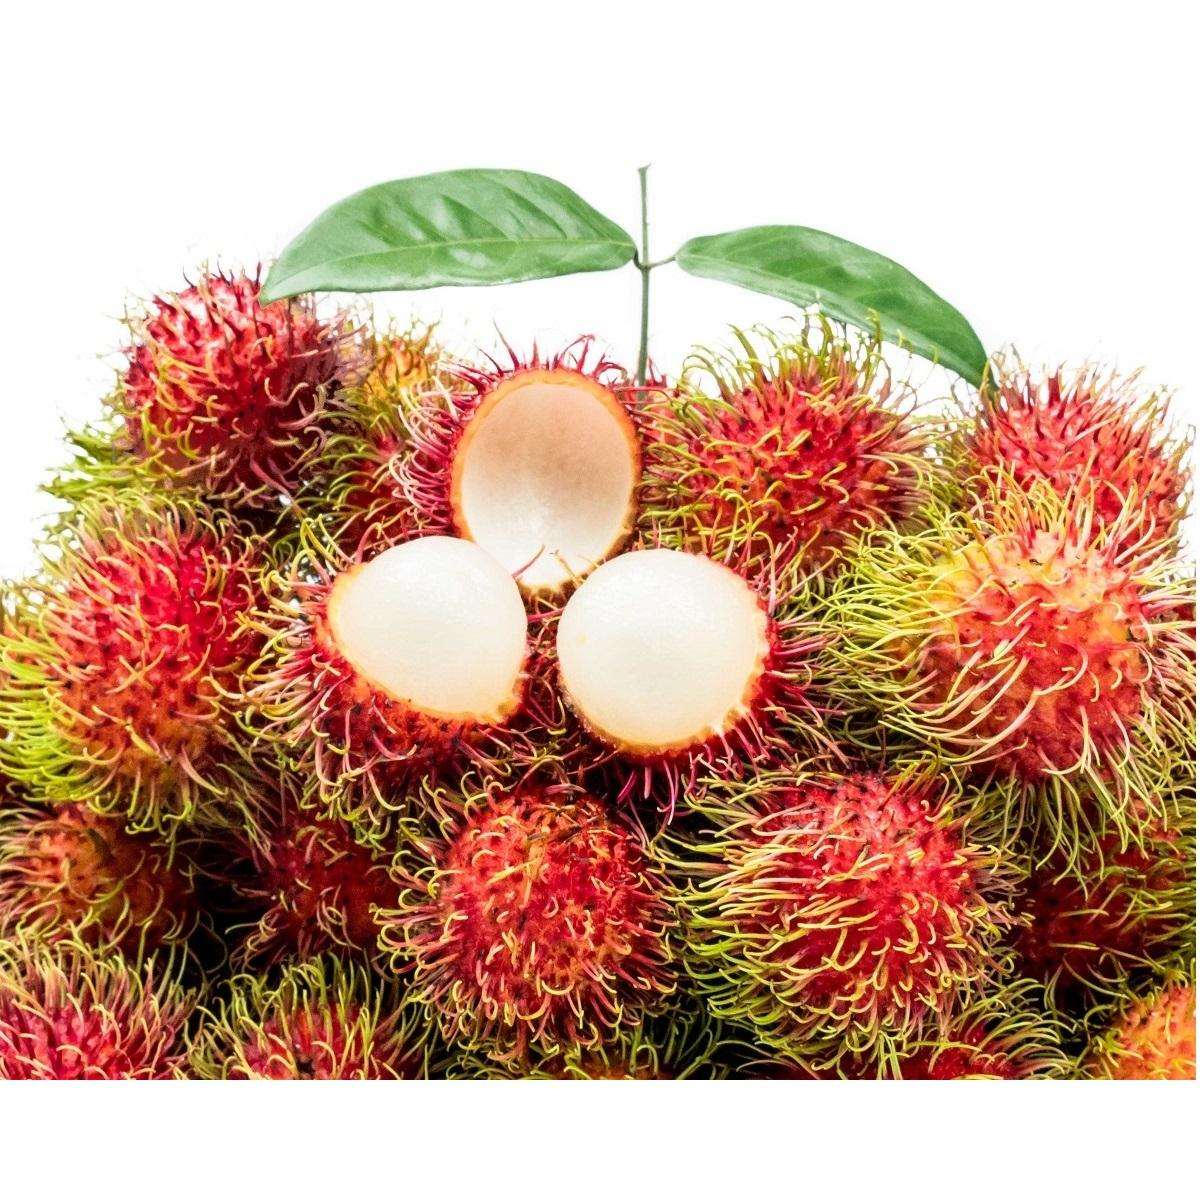 High Quality Fresh Fruit Round Red Rambutan Java Best Tropical Fruit With Size 4cm From Vietnam Company